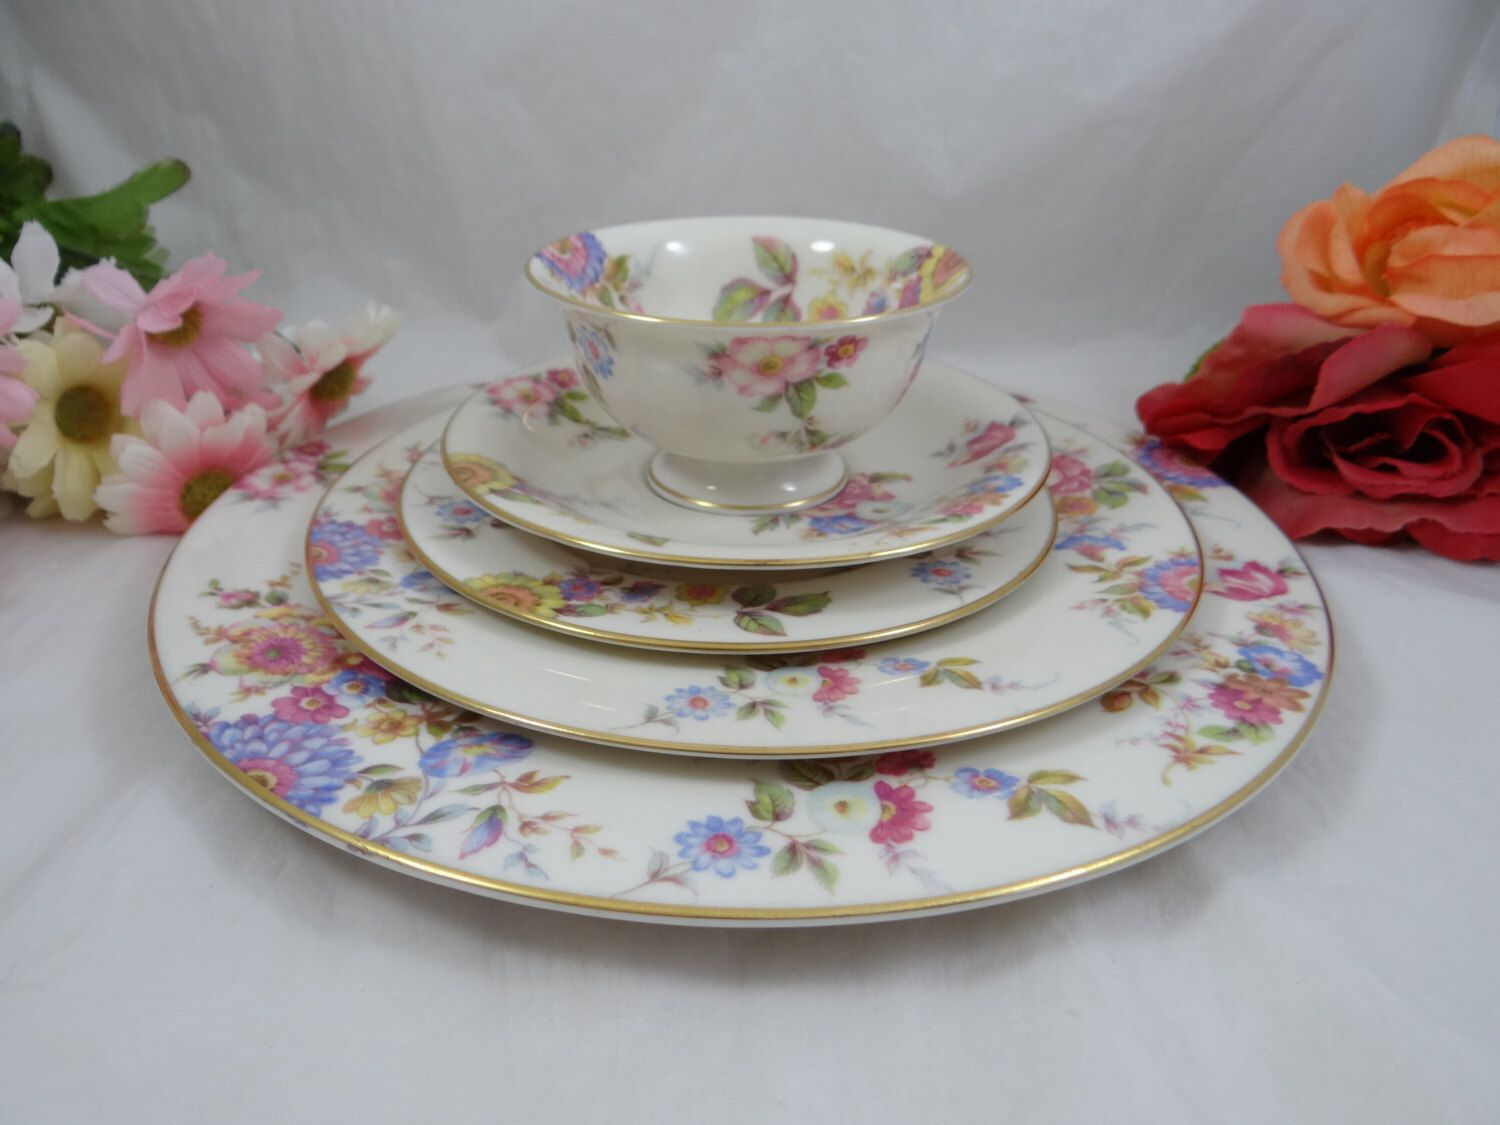 1950s Castleton China  Sunnybrooke  5 Piece Place Setting Dinner Plate Teacup - Made in & 1950s Castleton China